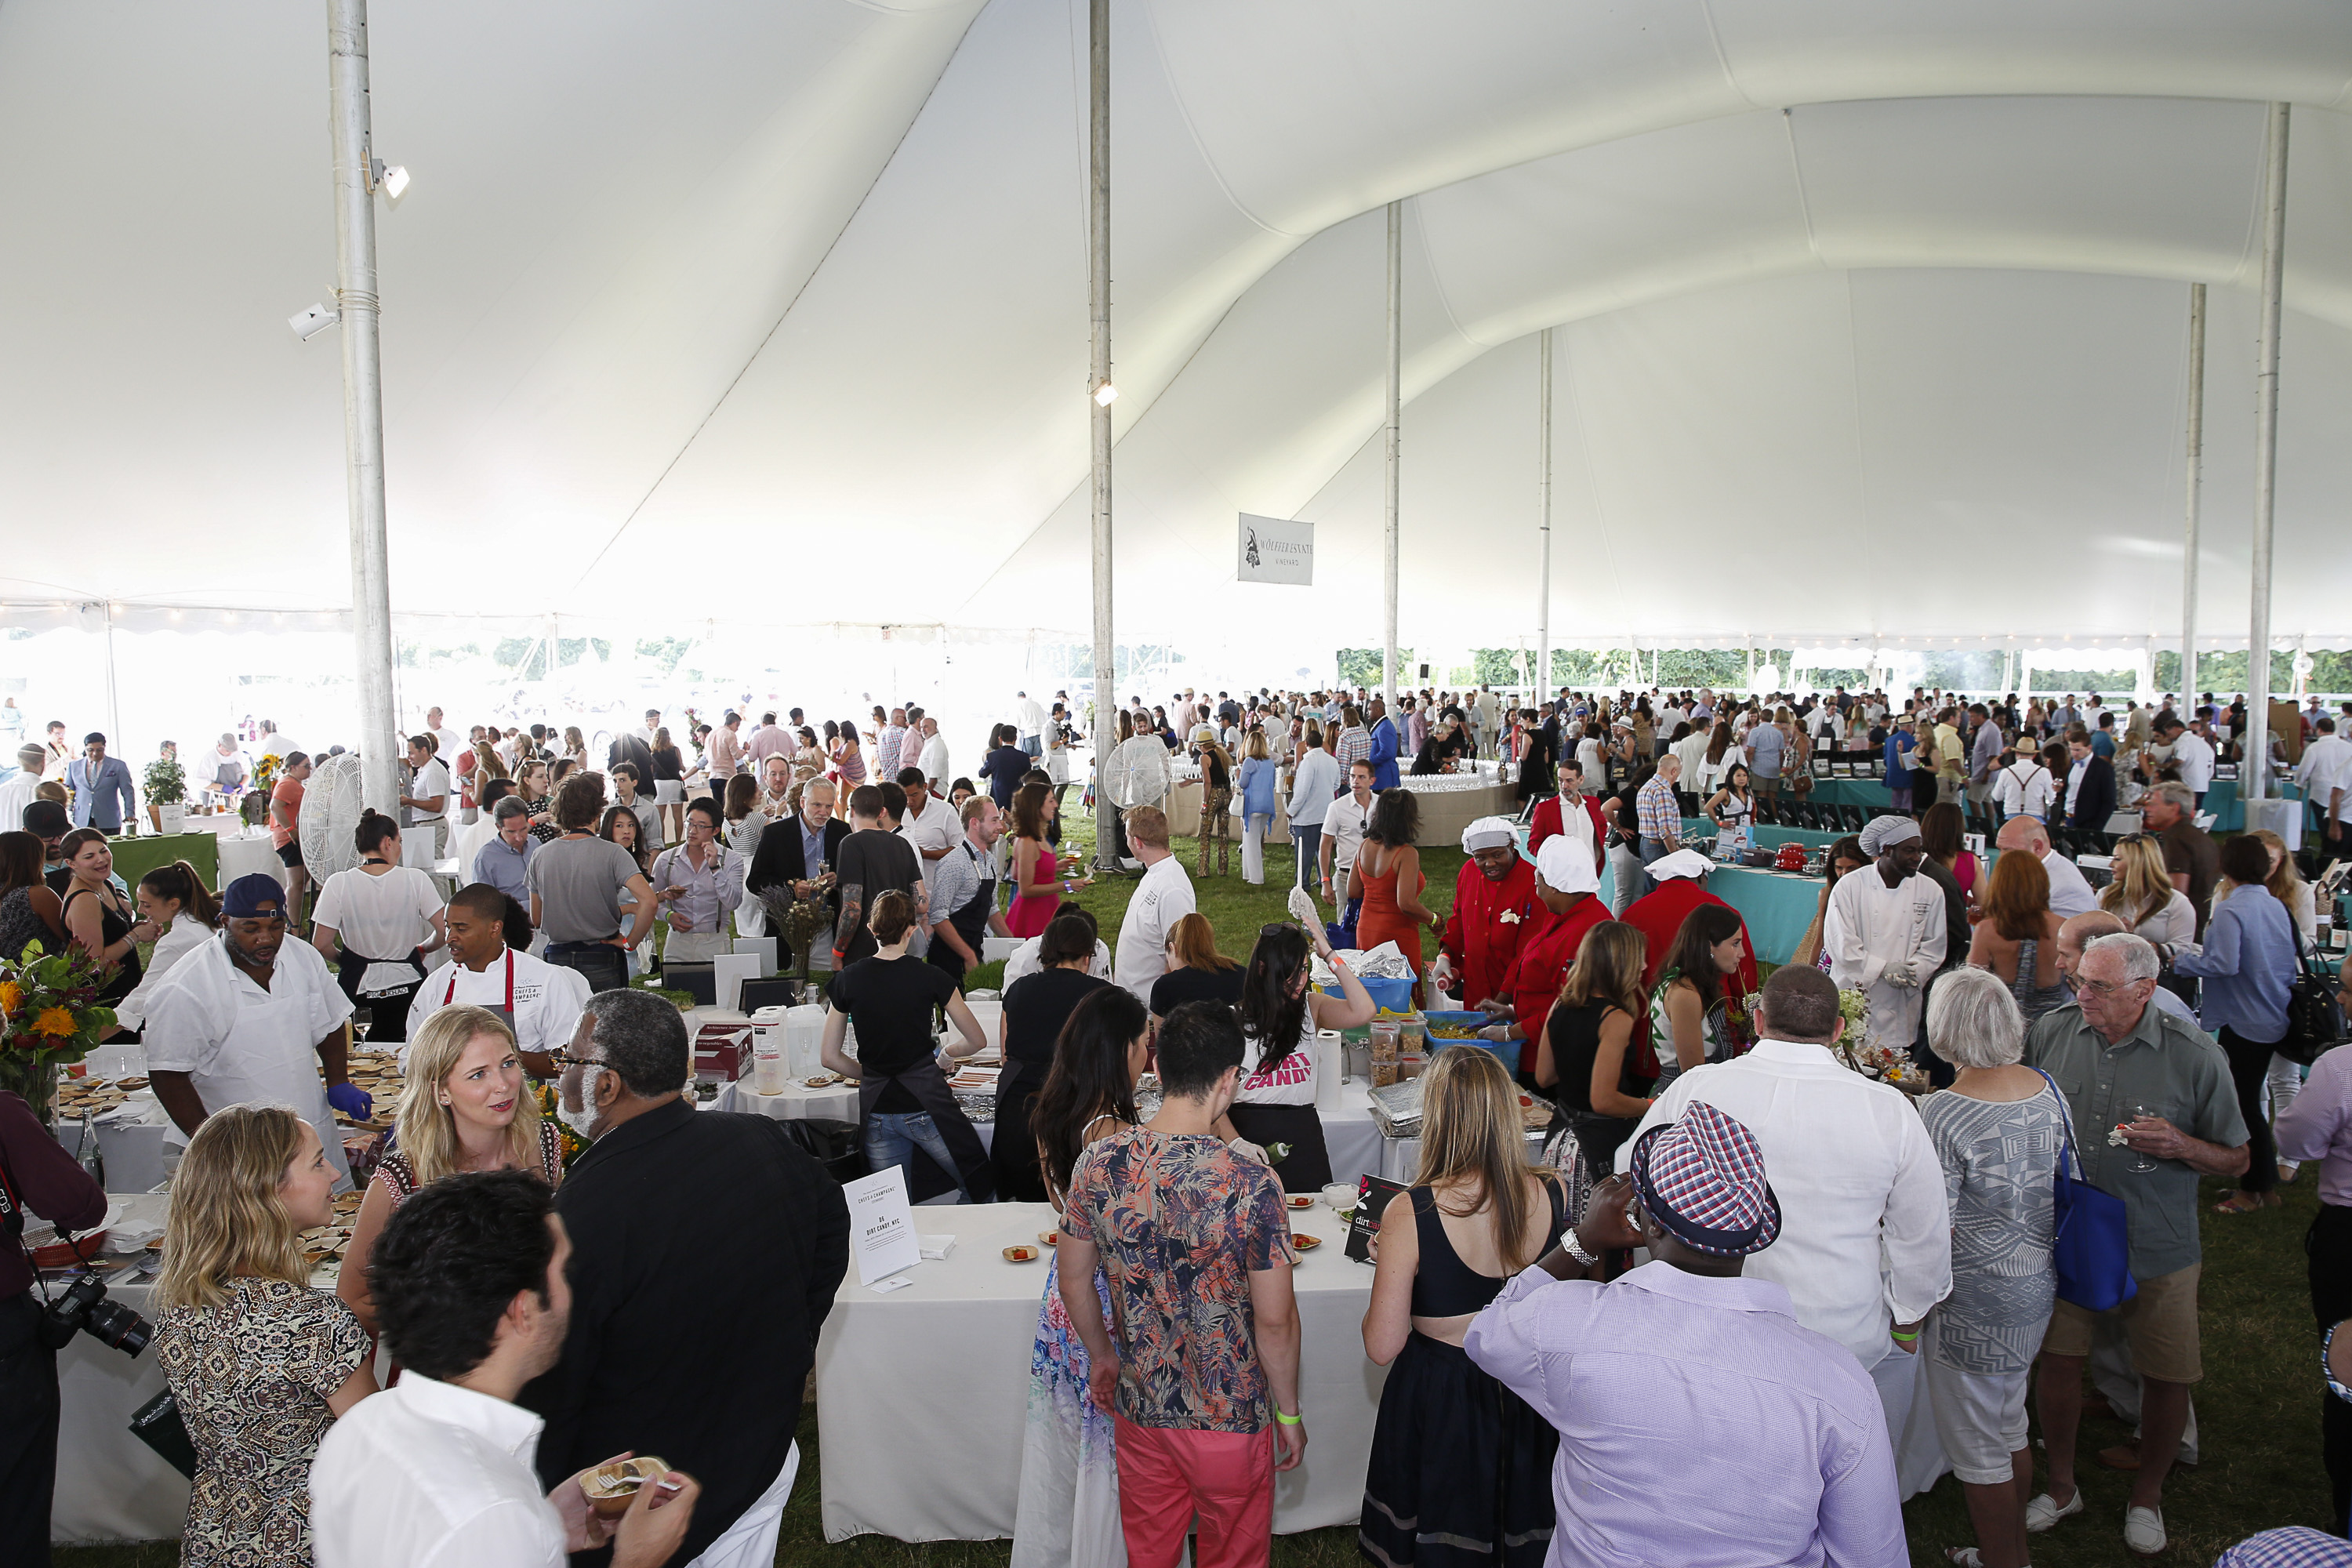 Atmosphere seen at James Beard Foundation's Chefs & Champagne at Wolffer Estate on Saturday, July 25, 2015 in Sagaponack, N.Y. (credit: mark von holden/invision for james beard foundation/ap Images)